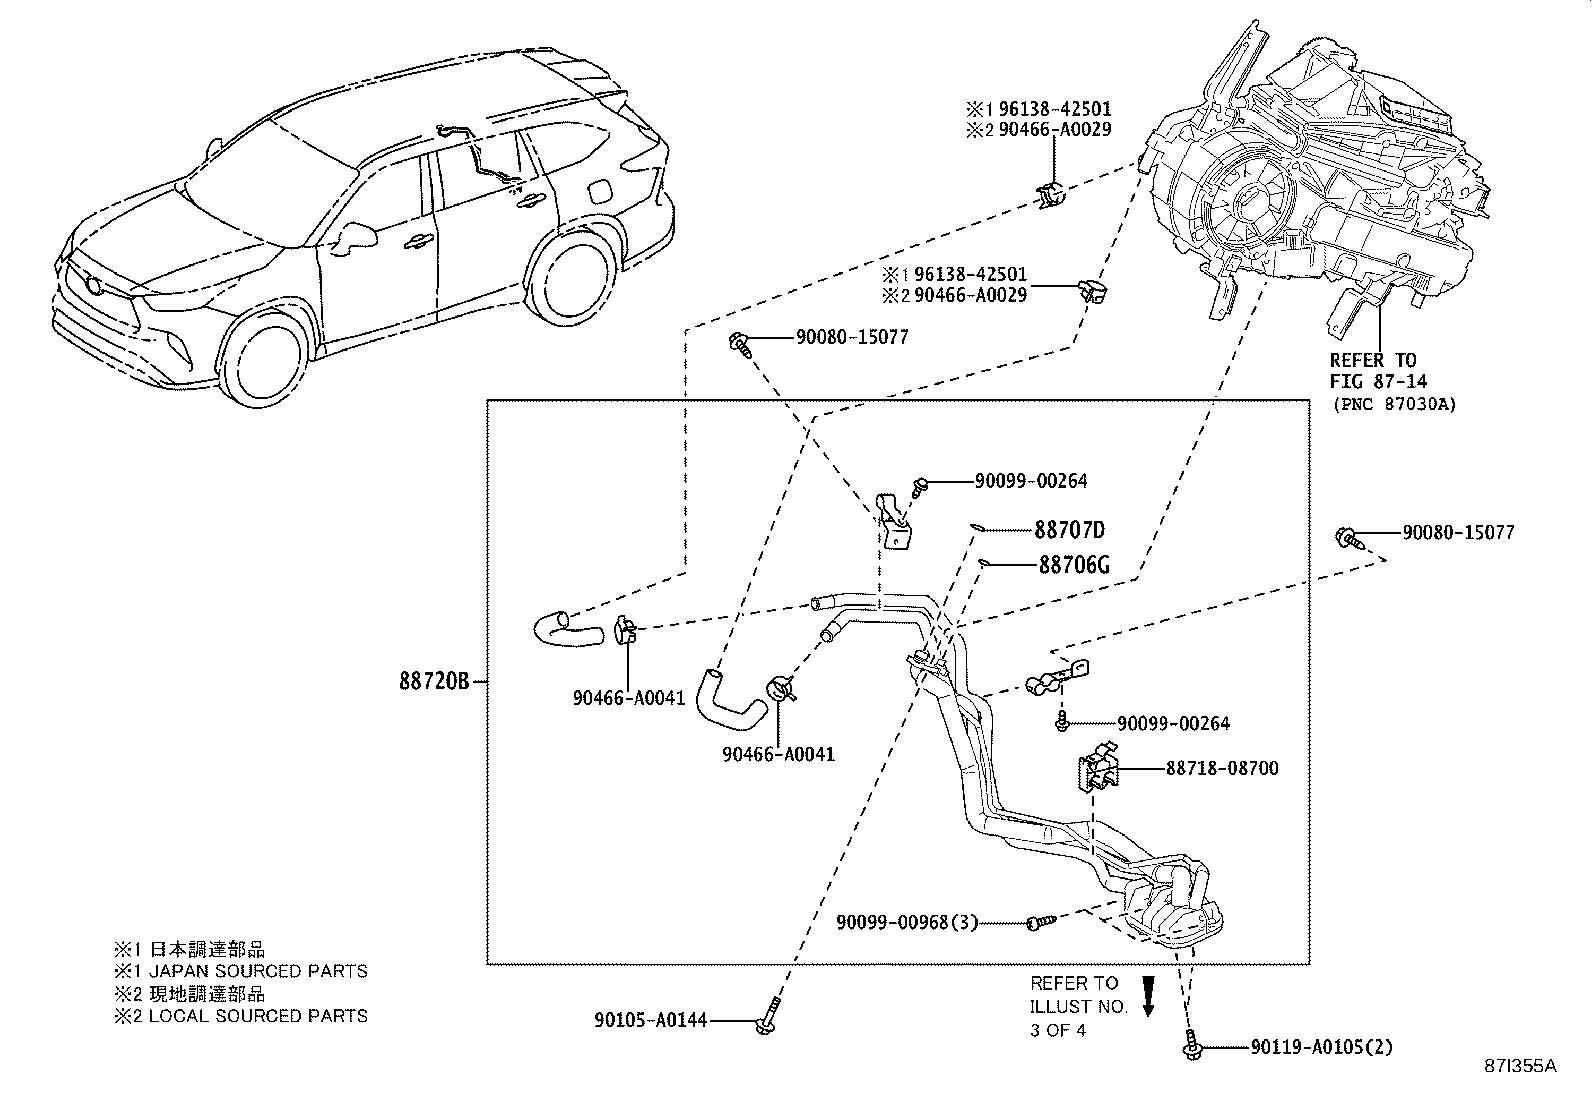 Toyota Highlander Tube & accessory assembly, air